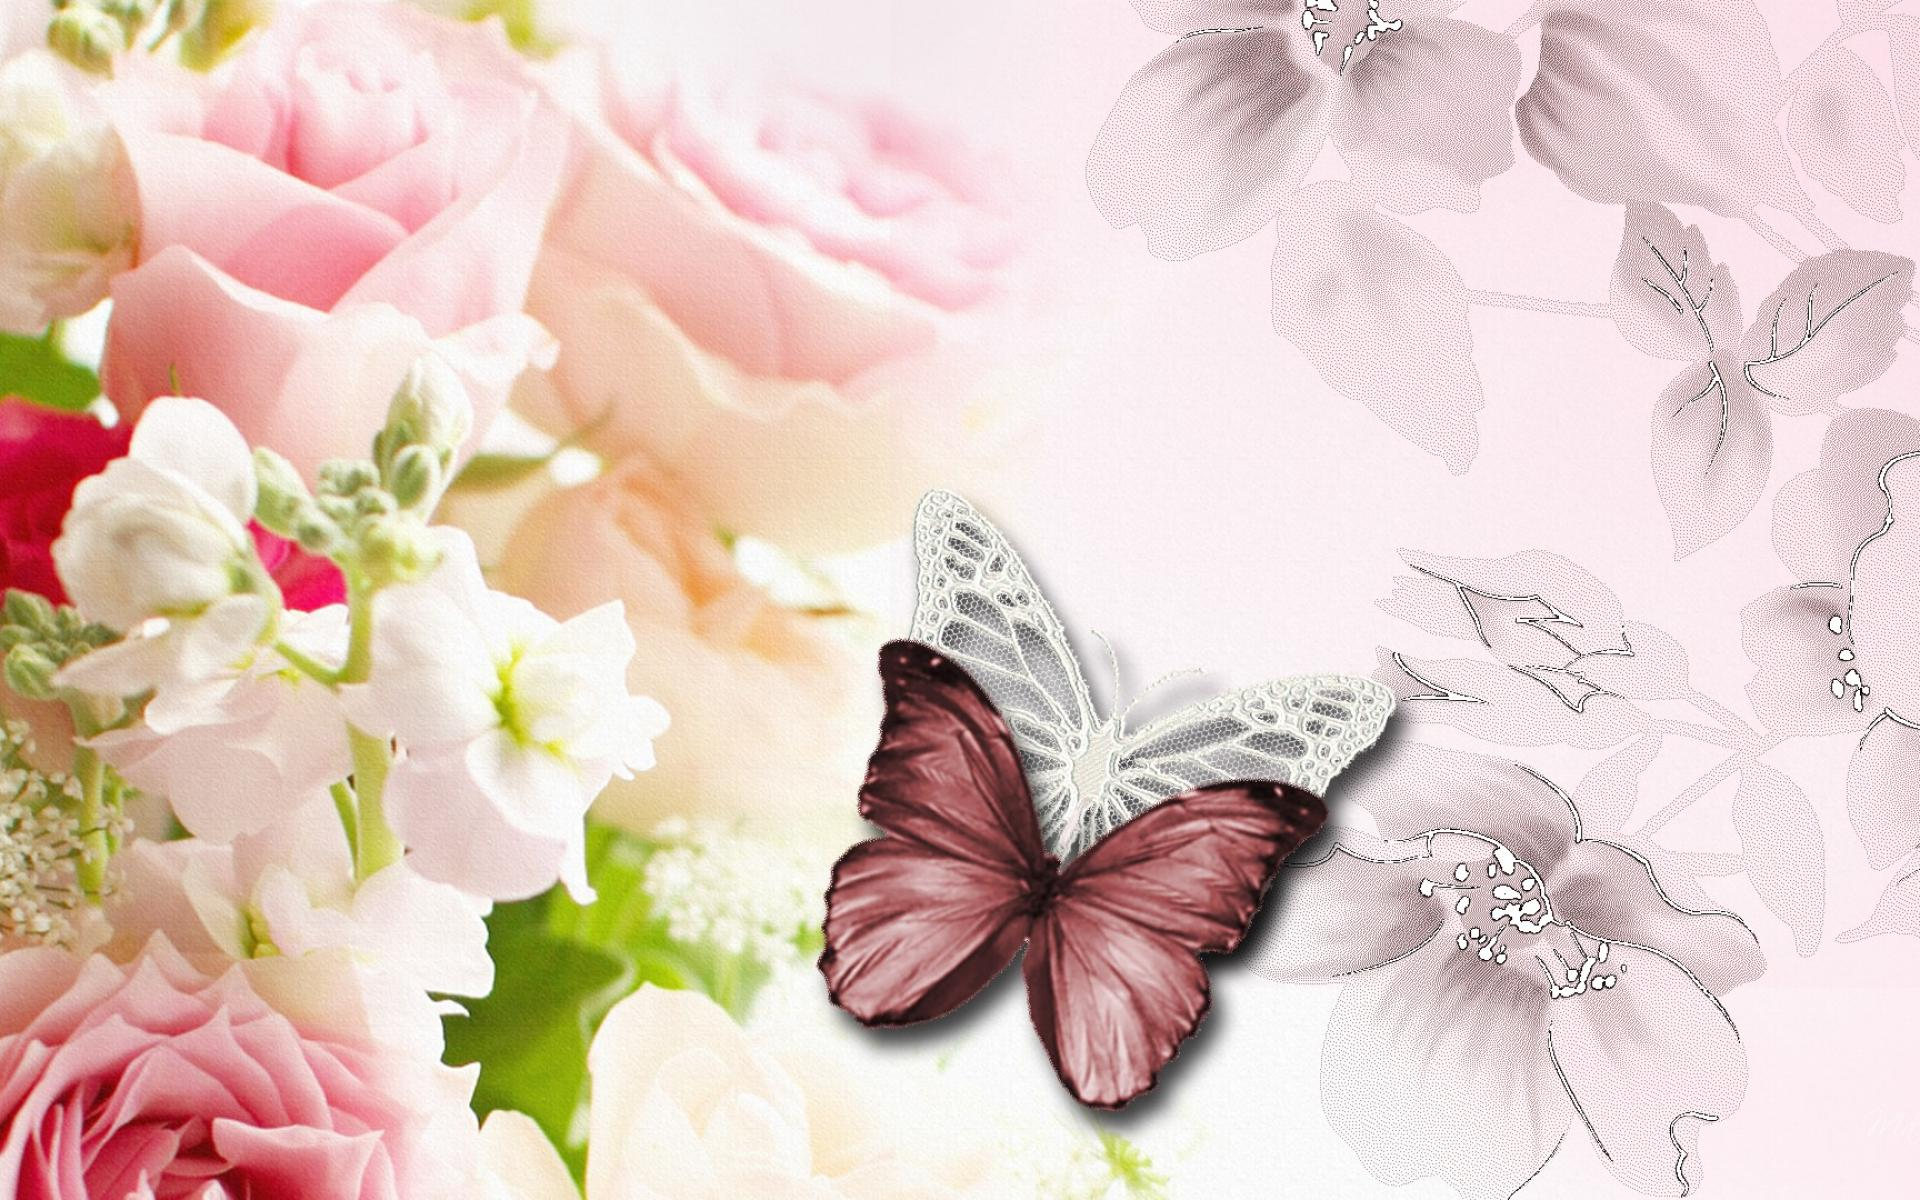 Abstraction Floral Abstract Butterflies Flowers Lace Roses Hd Wallpaper